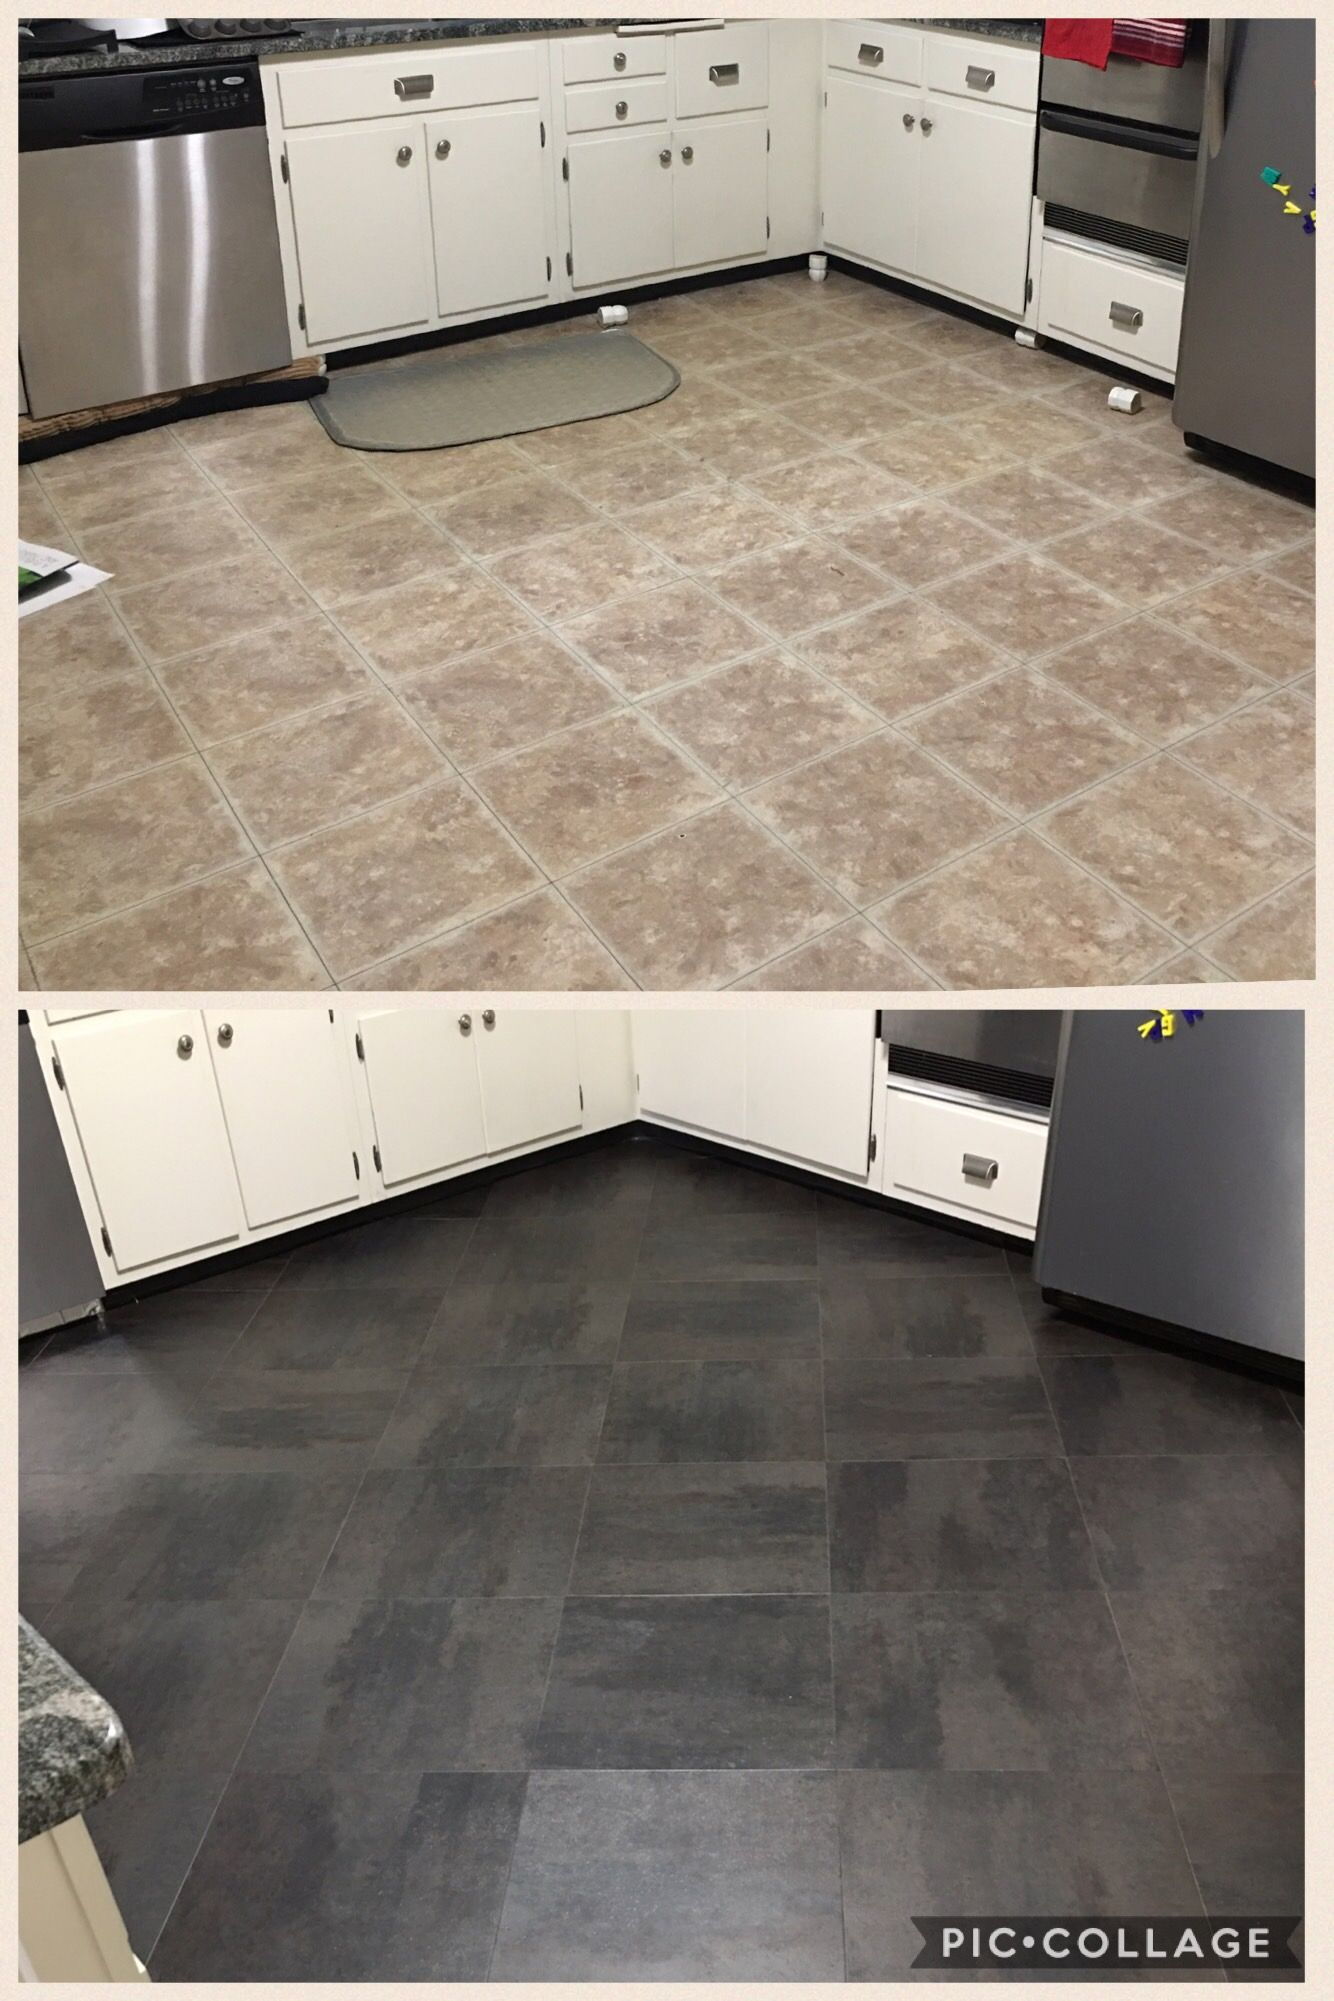 Kitchen Floor Before After For Only 280 Gray Slate Look Vinyl Peel And Stick Tiles Easy And Cheap Stick On Tiles Peel And Stick Tile Kitchen Vinyl